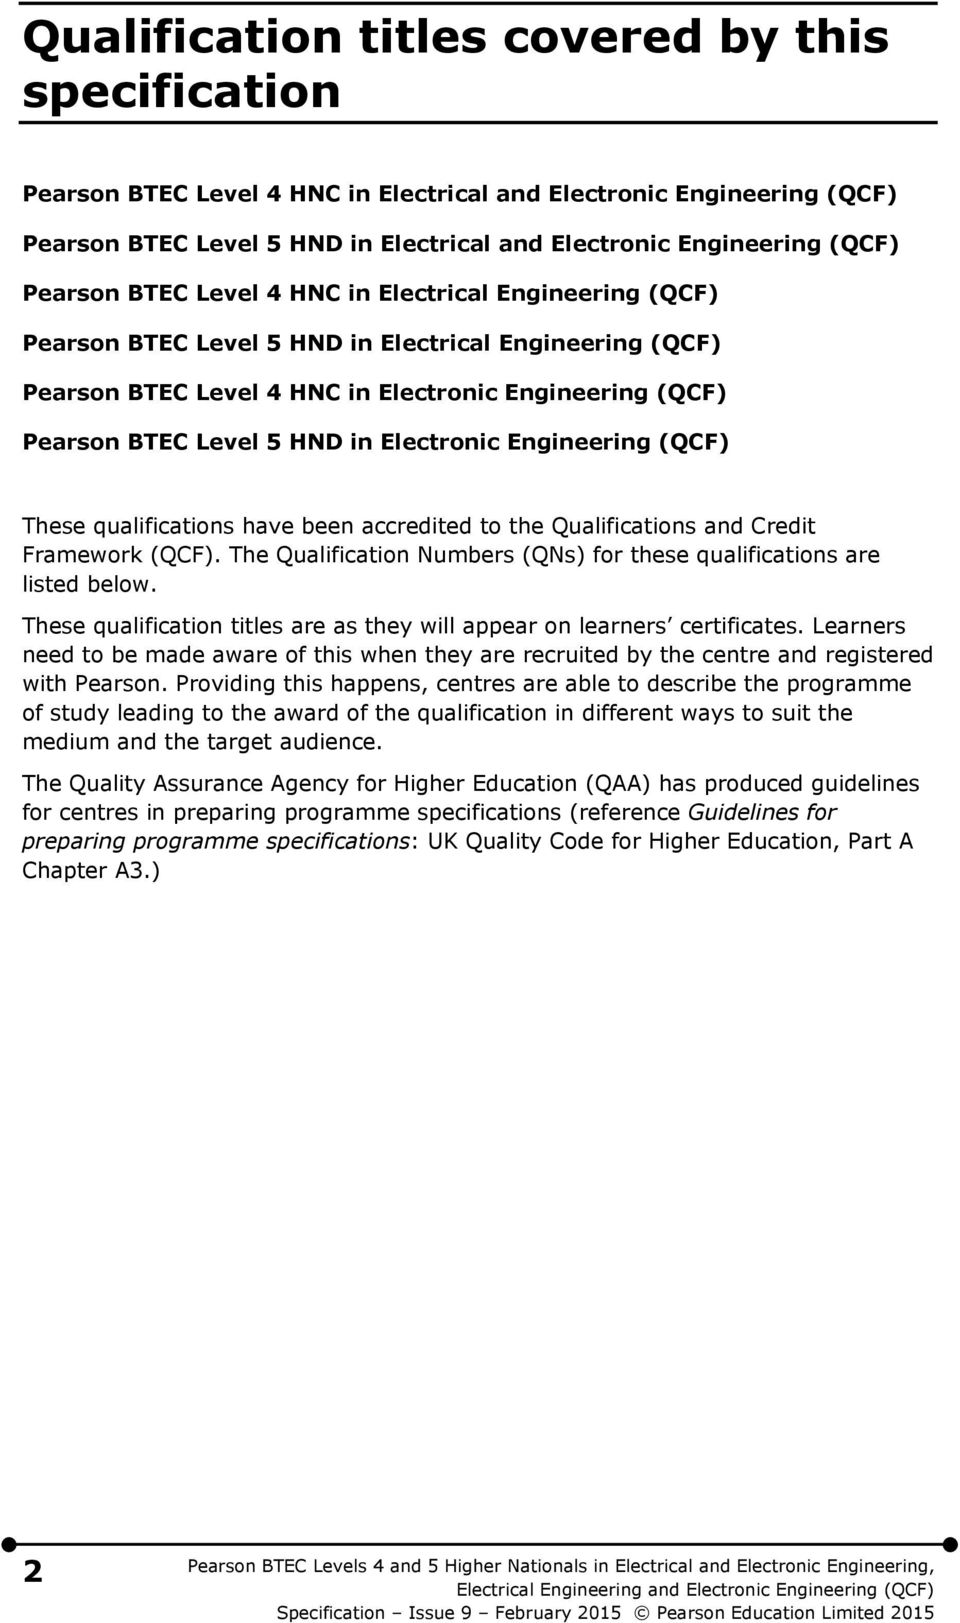 Electronic Engineering (QCF) These qualifications have been accredited to the Qualifications and Credit Framework (QCF). The Qualification Numbers (QNs) for these qualifications are listed below.